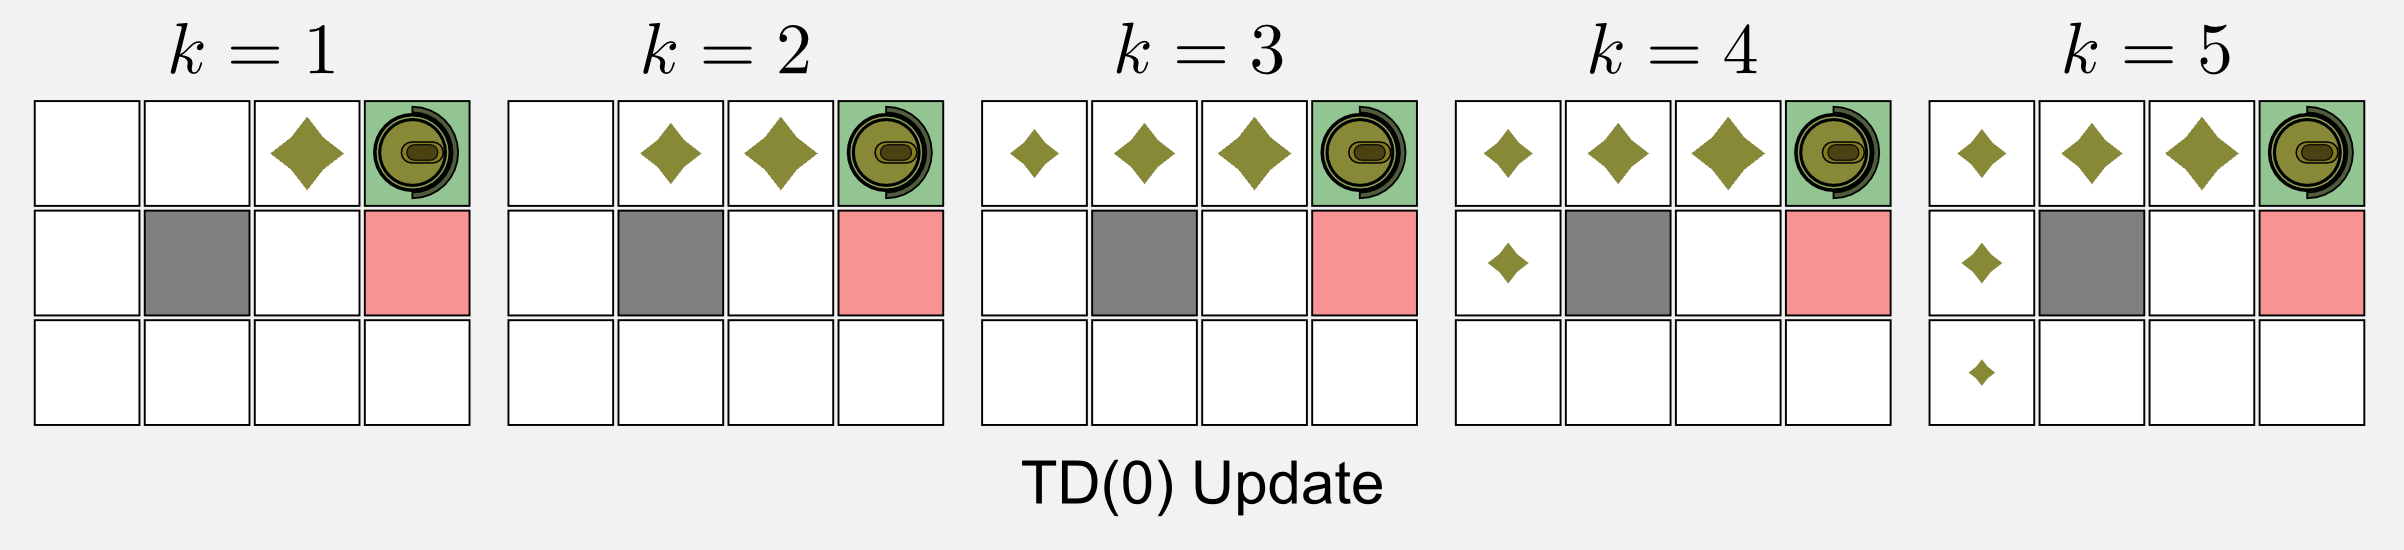 Reinforcement Learning TD(0) update rule propagation